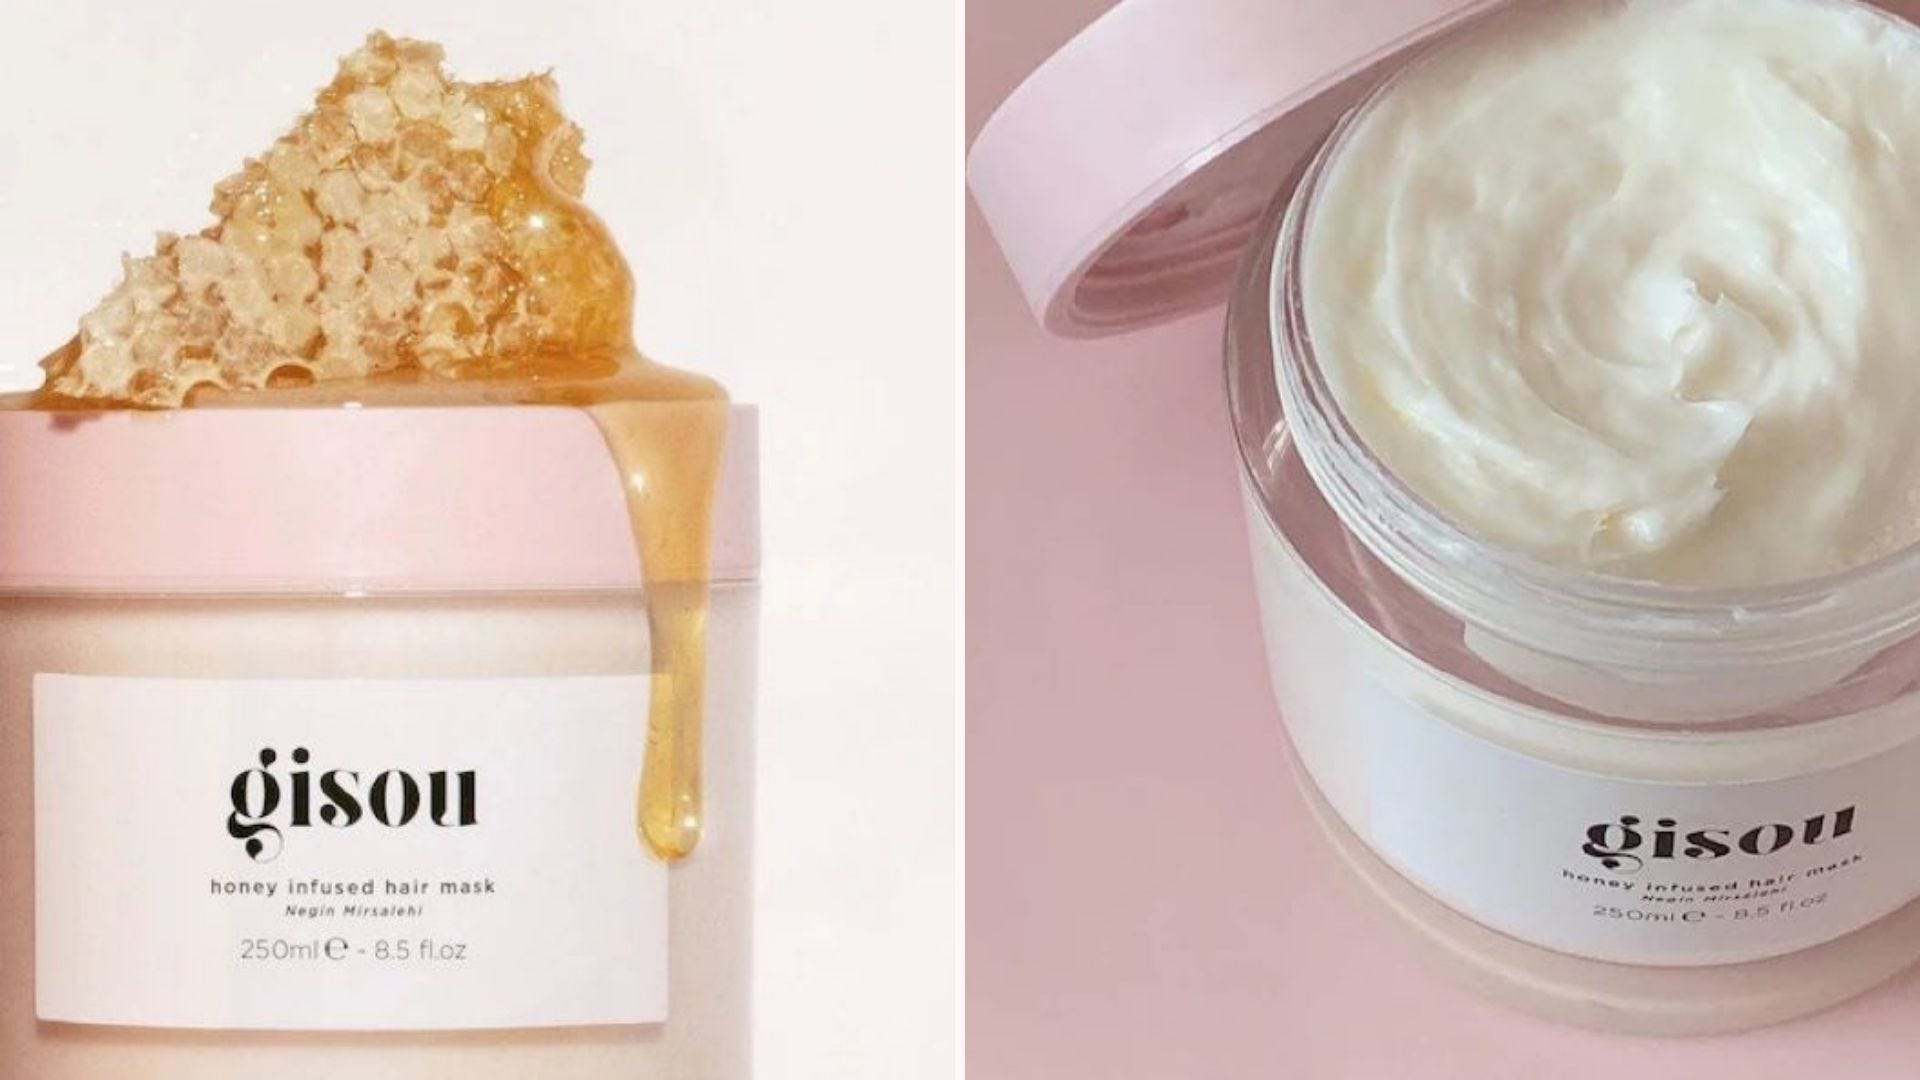 A jar of Gisou Honey Infused Hair Mask with a honeycomb sitting on top of it, and an opened jar showing the cream inside.